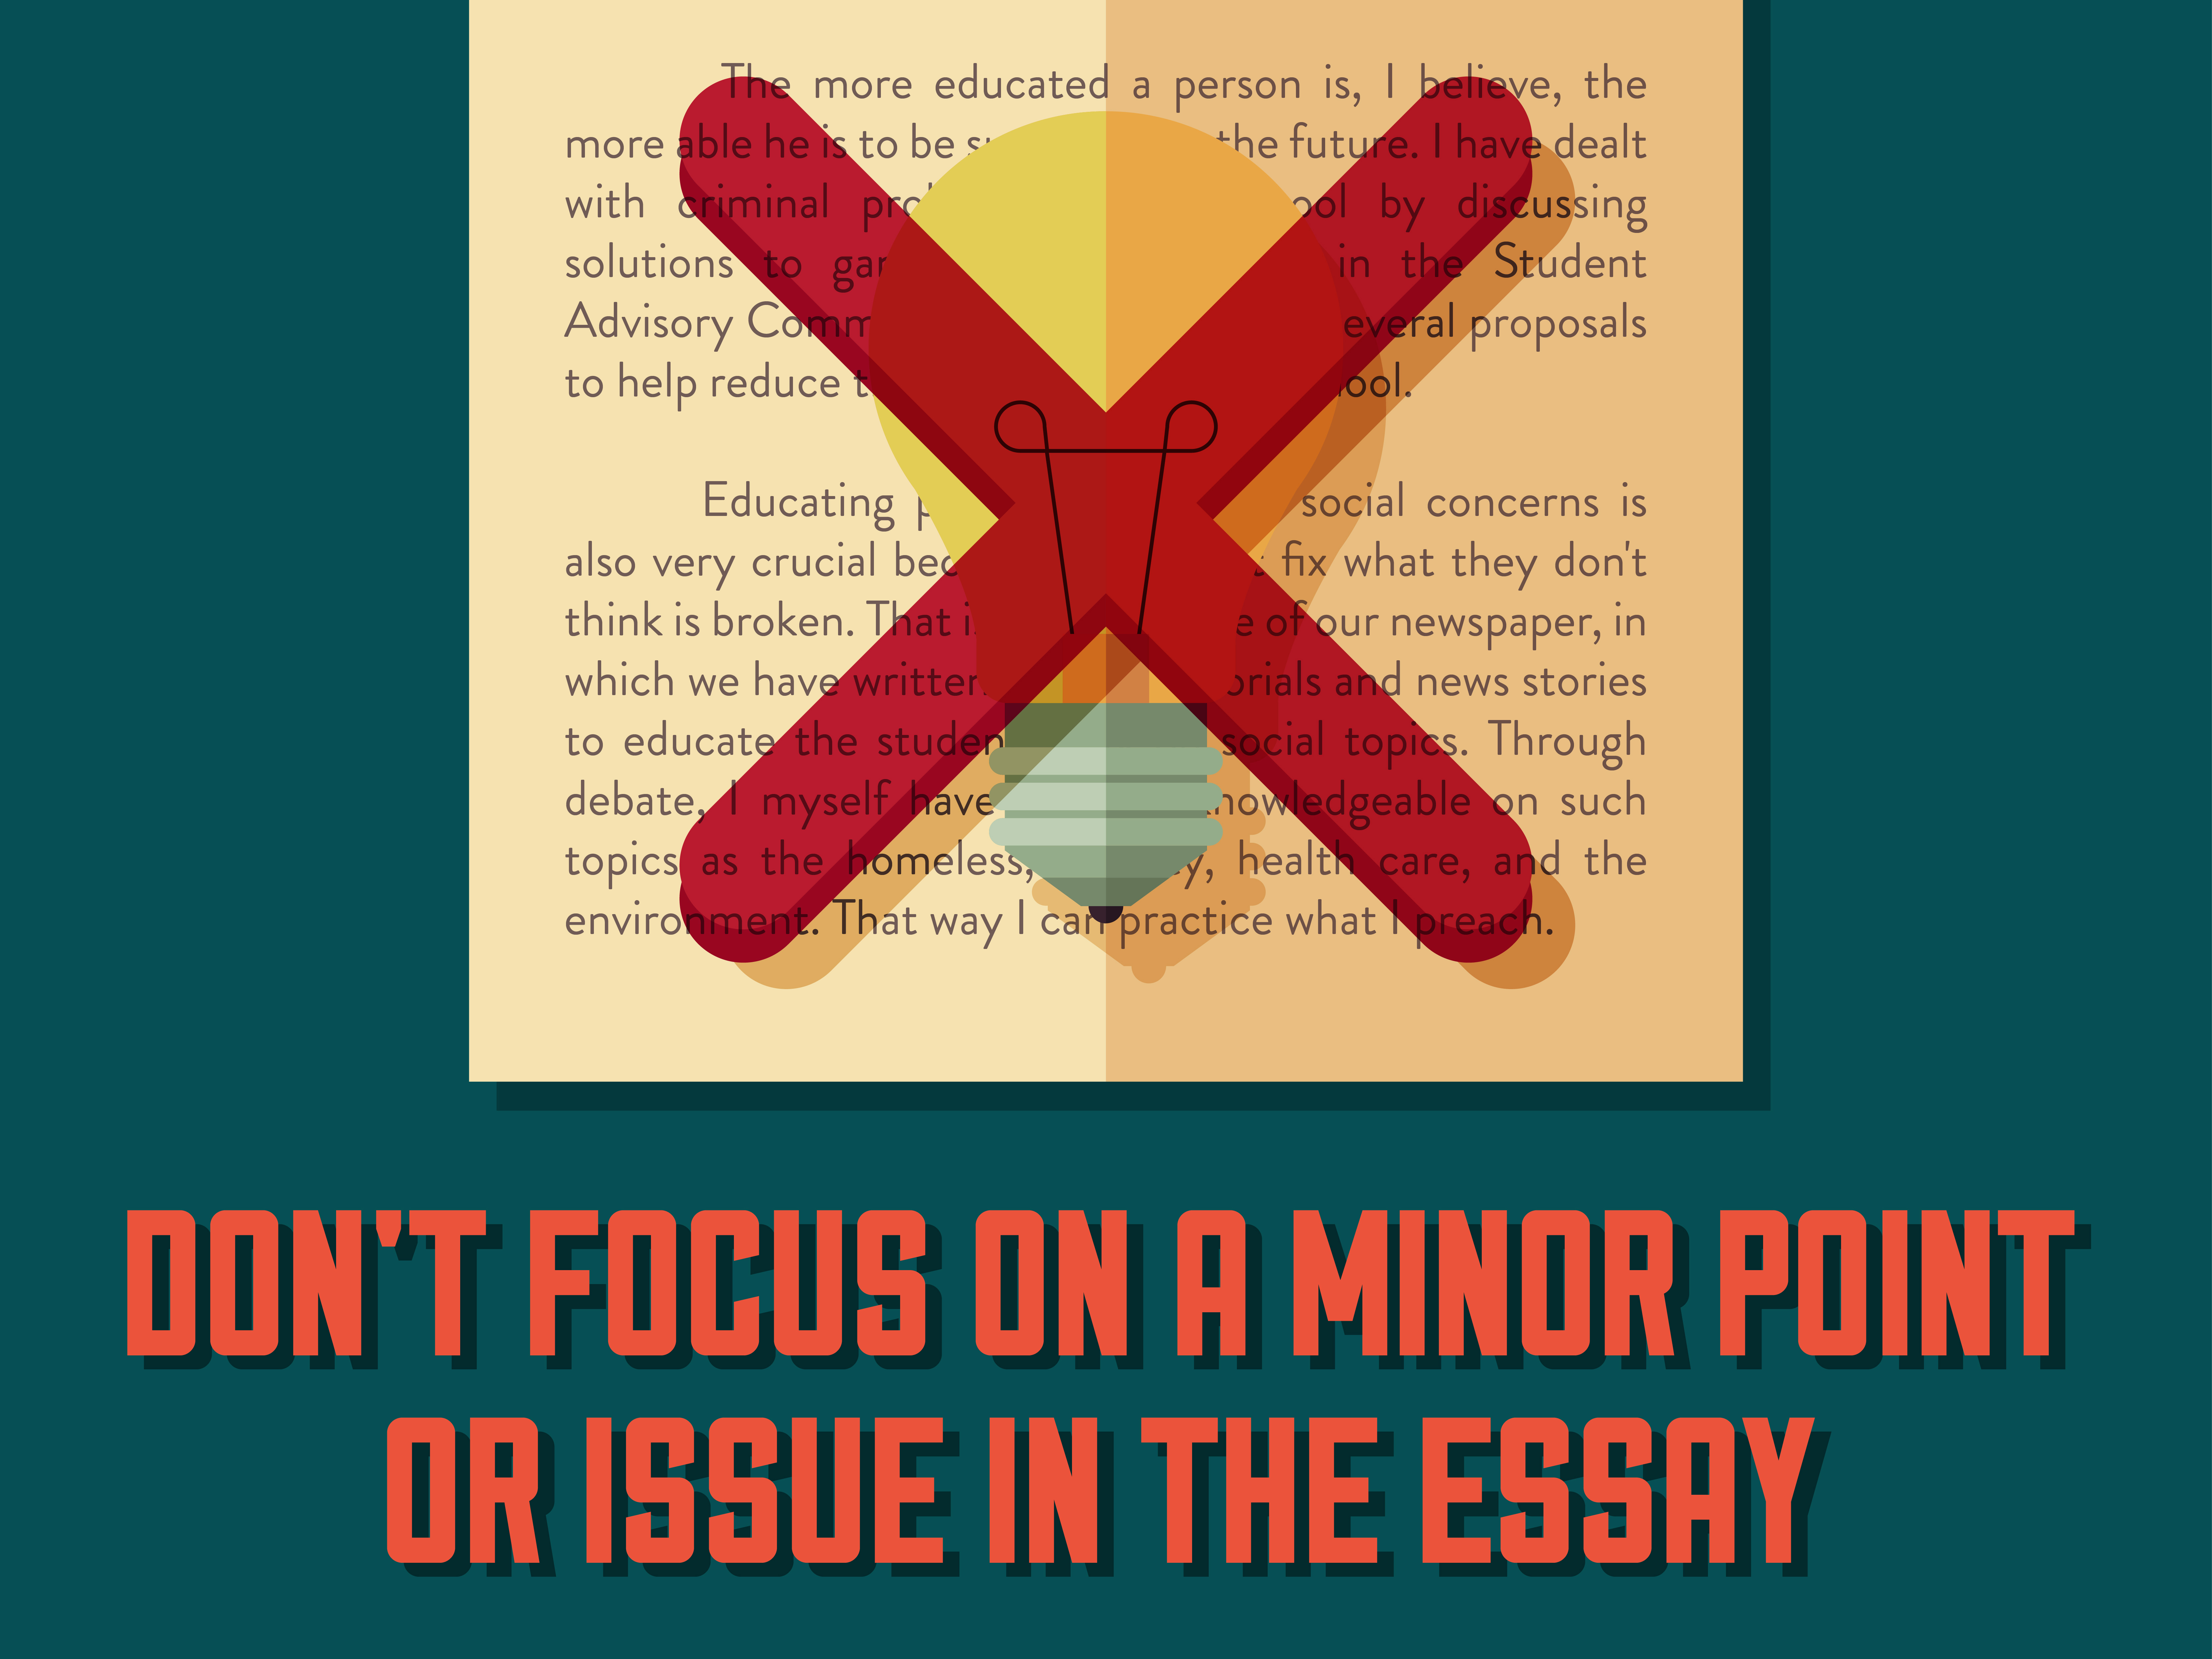 017 Research Paper Argumentative Vs Expository Essays End An Essay Step Version Awful Full